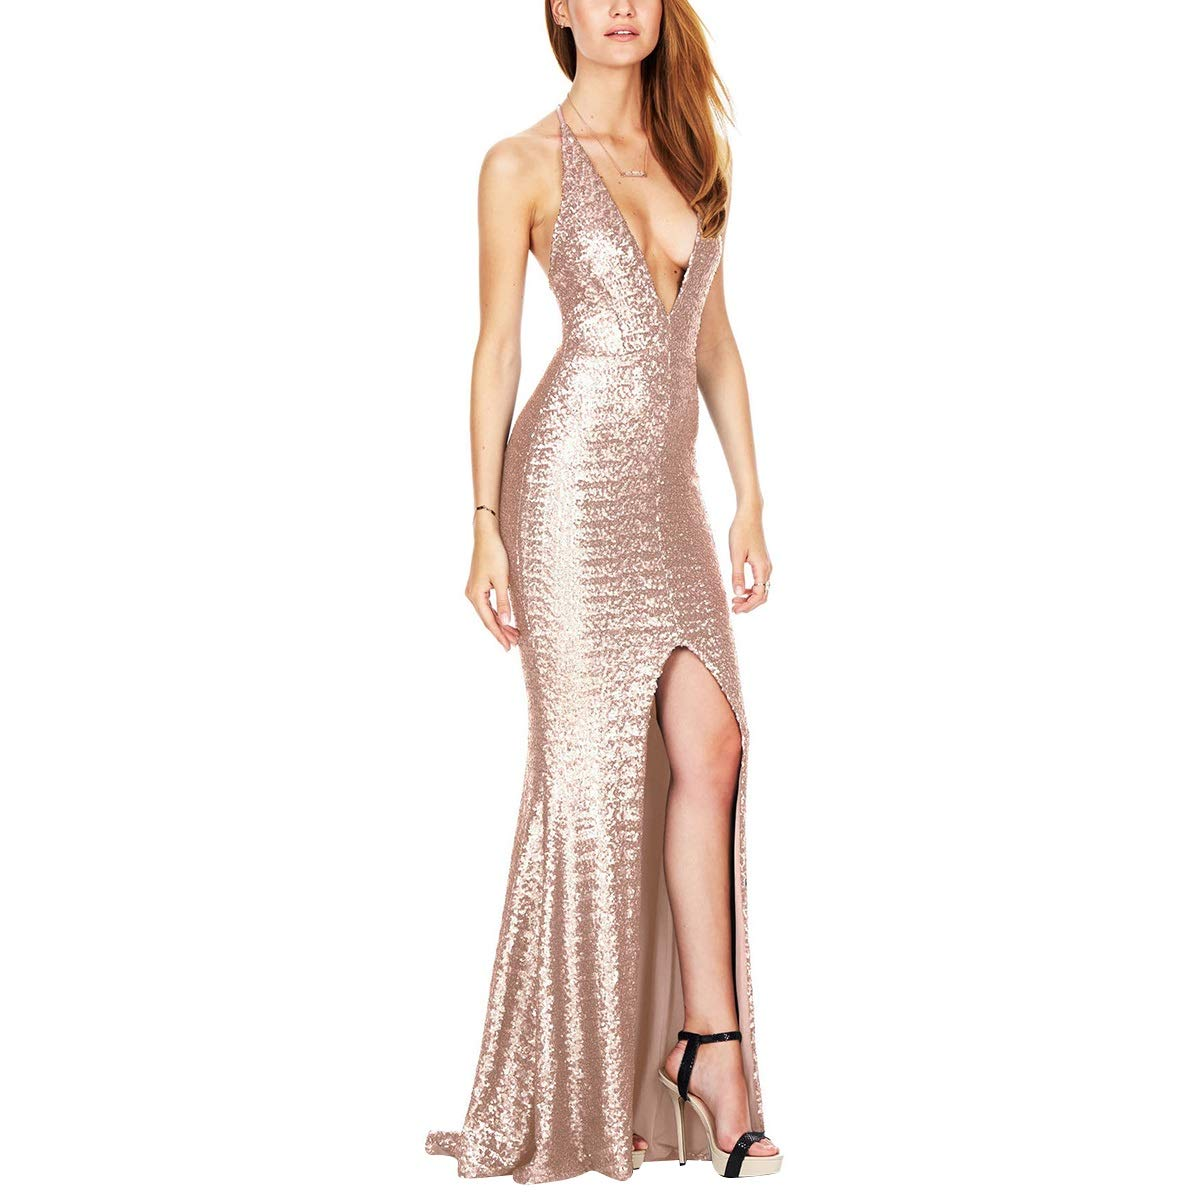 c7064de20a7b Sequins Bodycon Mermaid V Neck Split Strappy Backless Evening Party Maxi  Dress at Amazon Women's Clothing store: